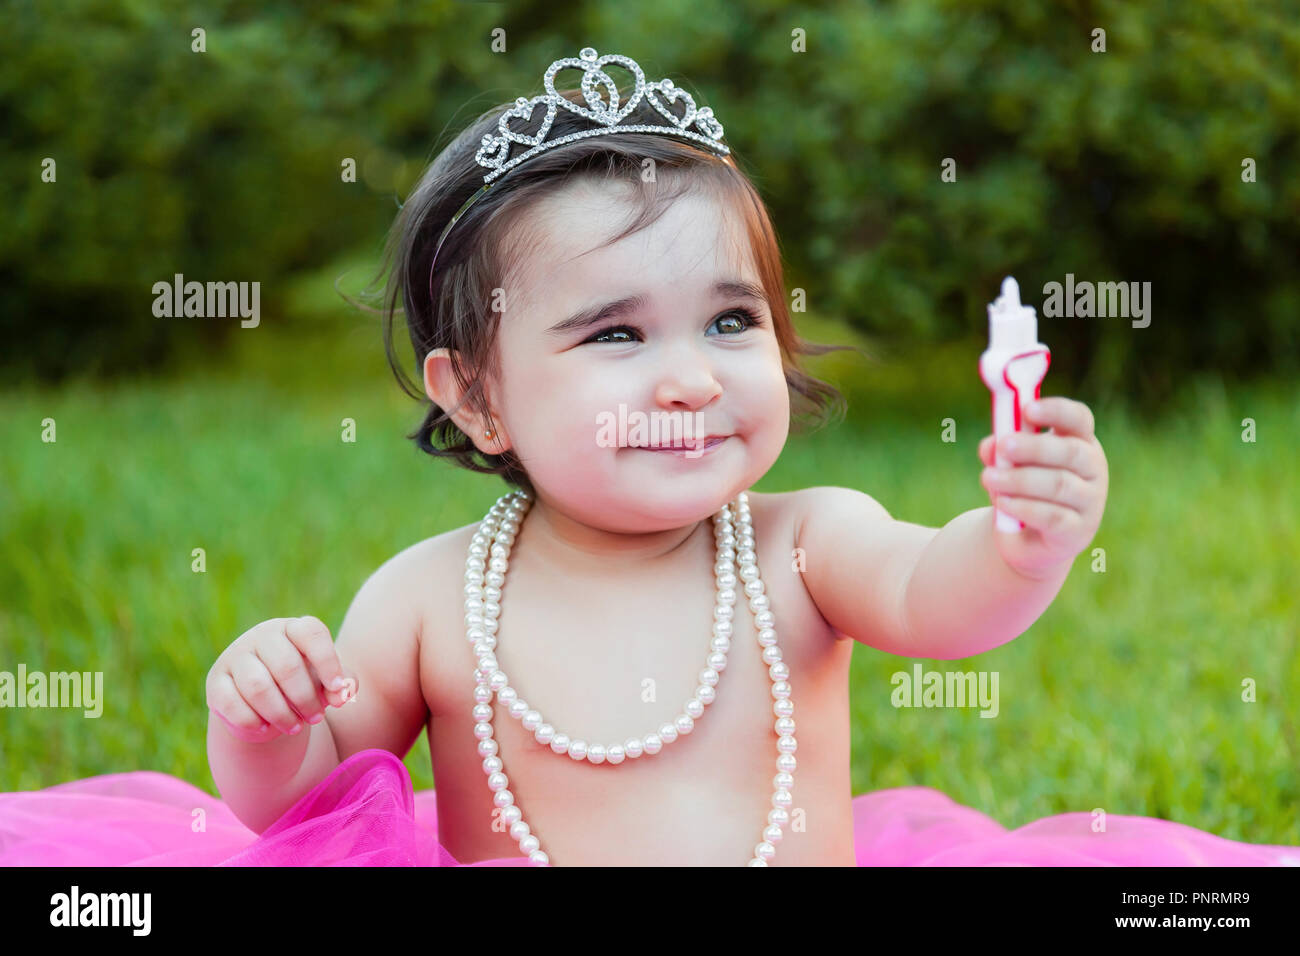 Baby toddler girl first birthday anniversary party, playing with candle, dirty face and making a mess of pink cake with candle. Princess costume - Stock Image